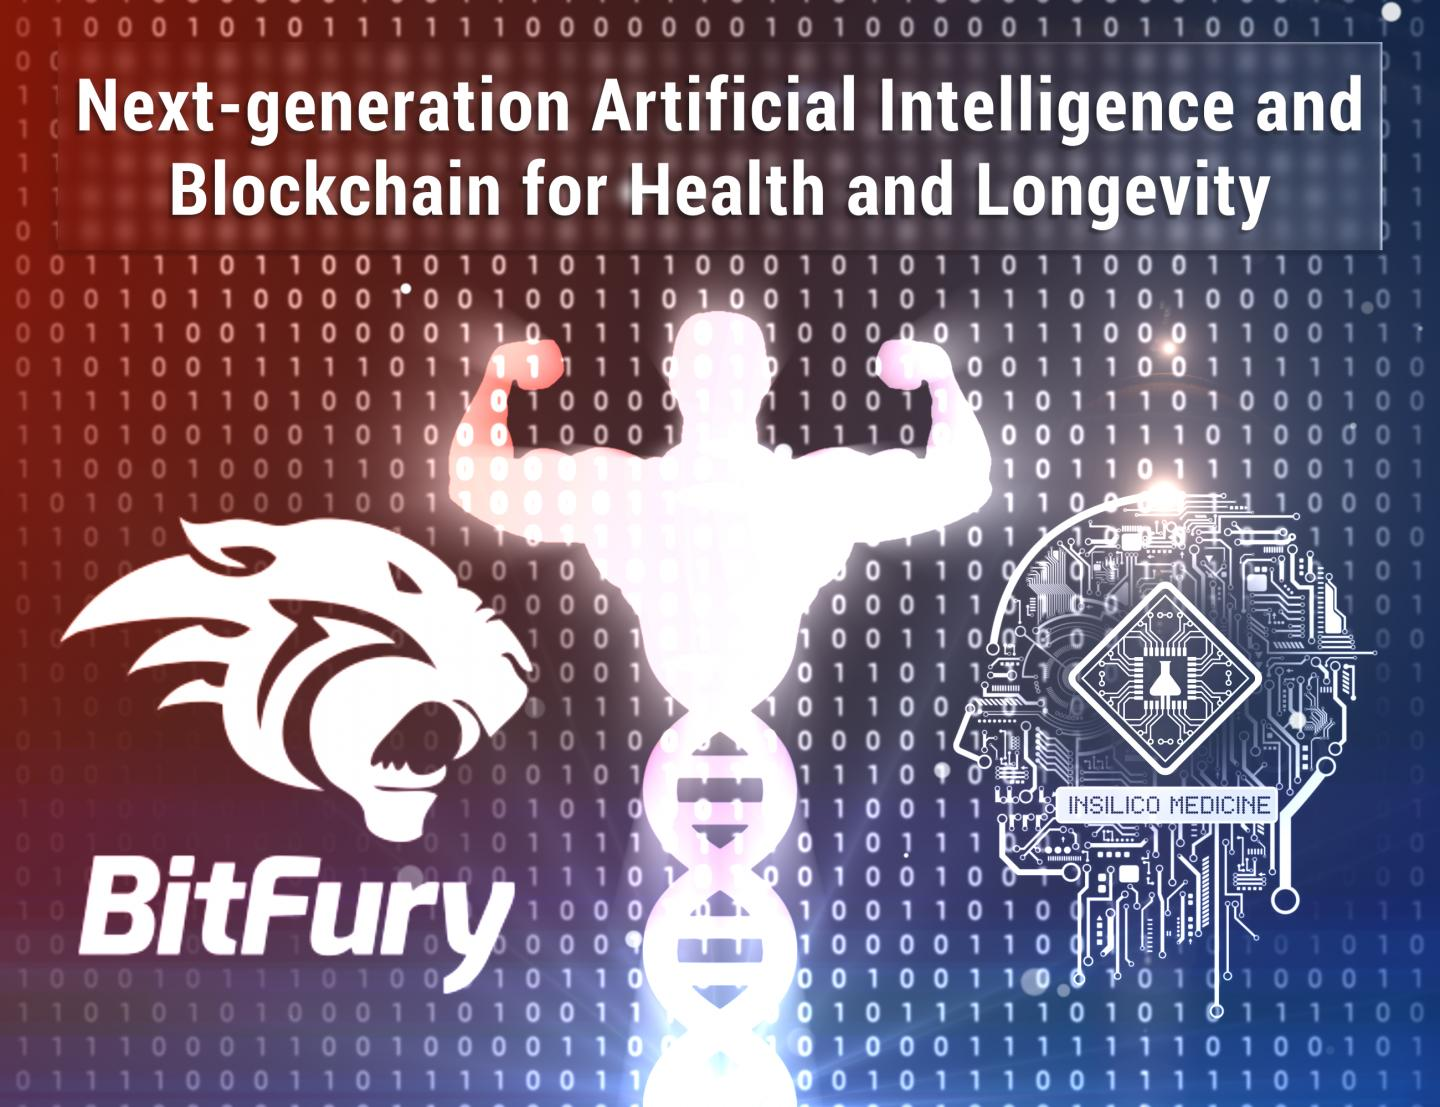 Next-Generation Artificial Intelligence and Blockchain for Healthcare and Longevity